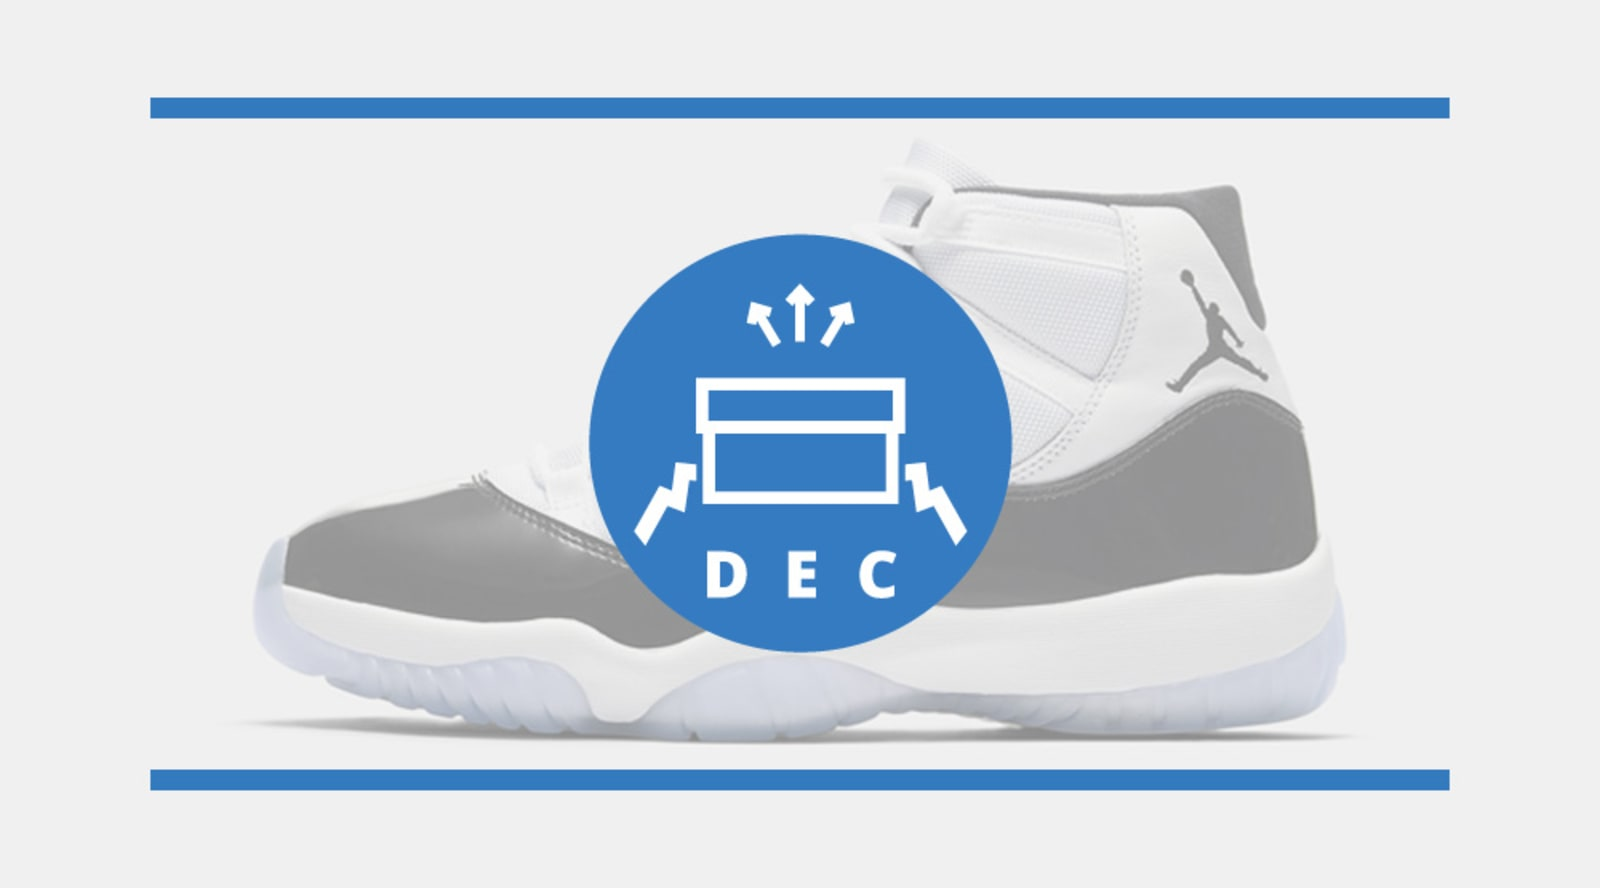 cdf56bf2c3 Before 2018 wraps up, December will feature one of the busiest months of  the year for sneaker releases. The